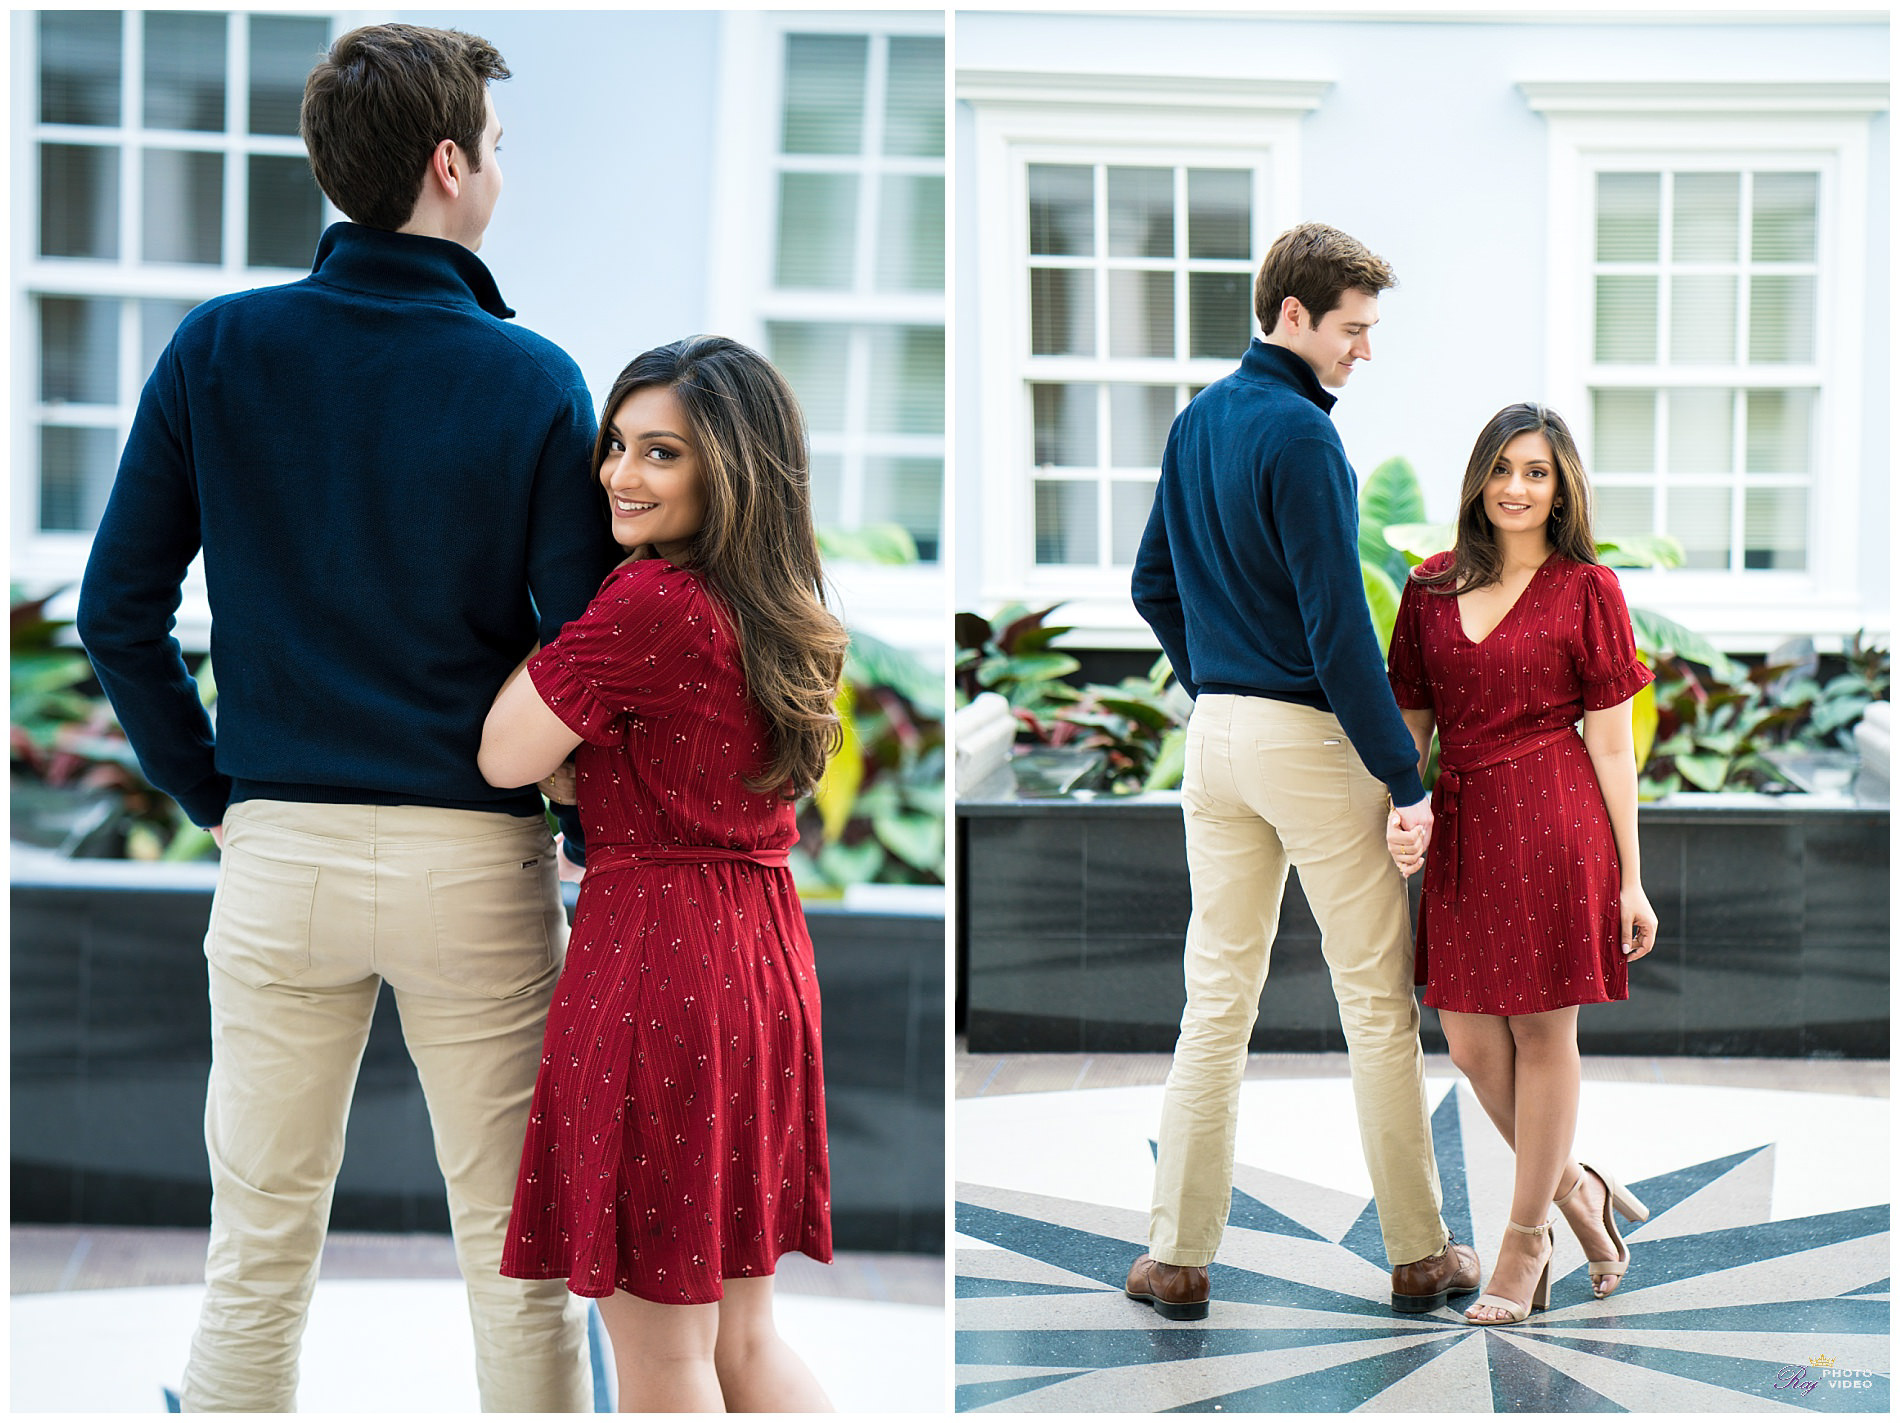 The-College-of-New-Jersey-Engagement-Shoot-Prerna-Kevin6.jpg